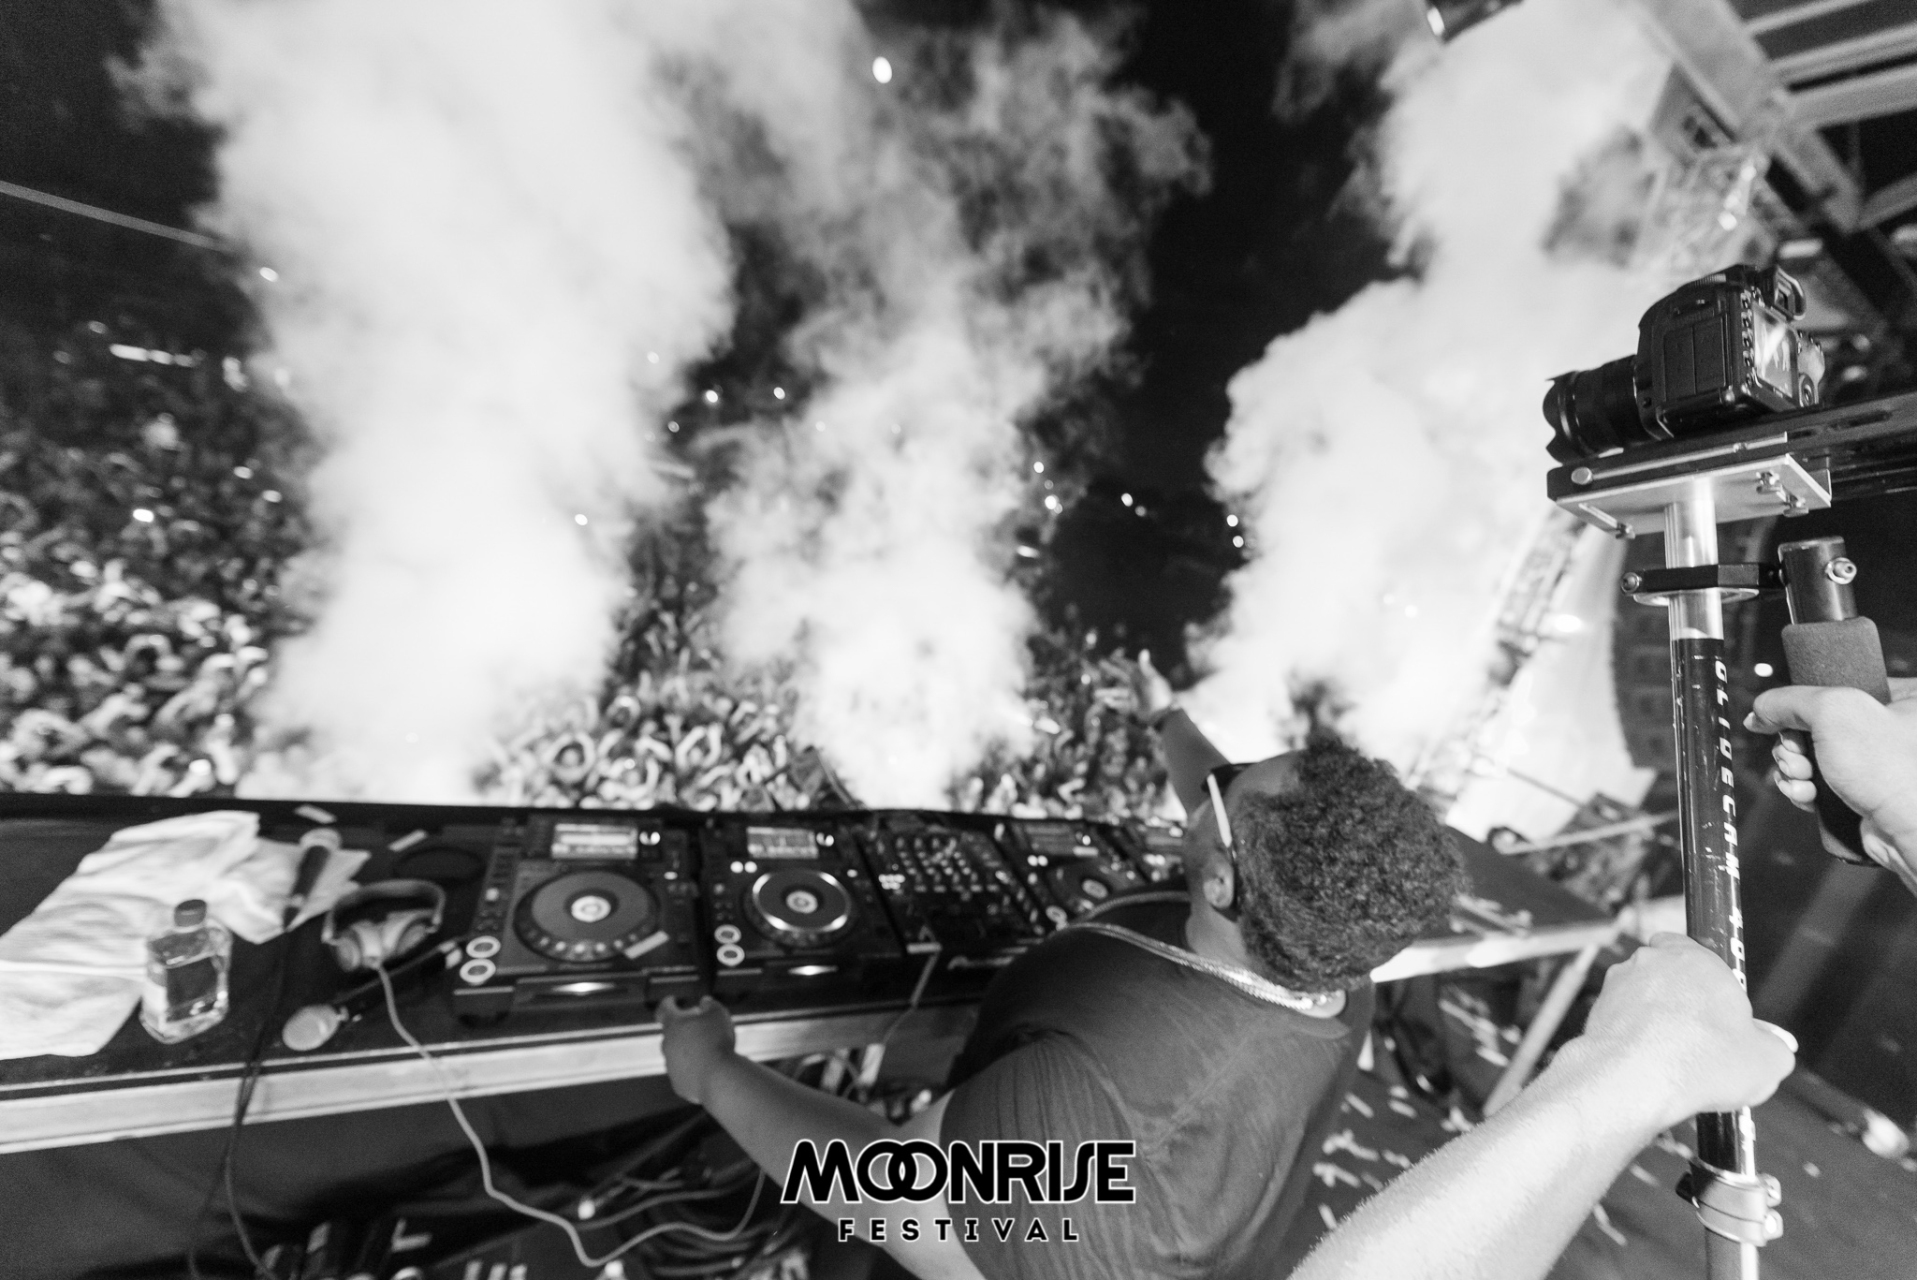 Moonrise_day2-107